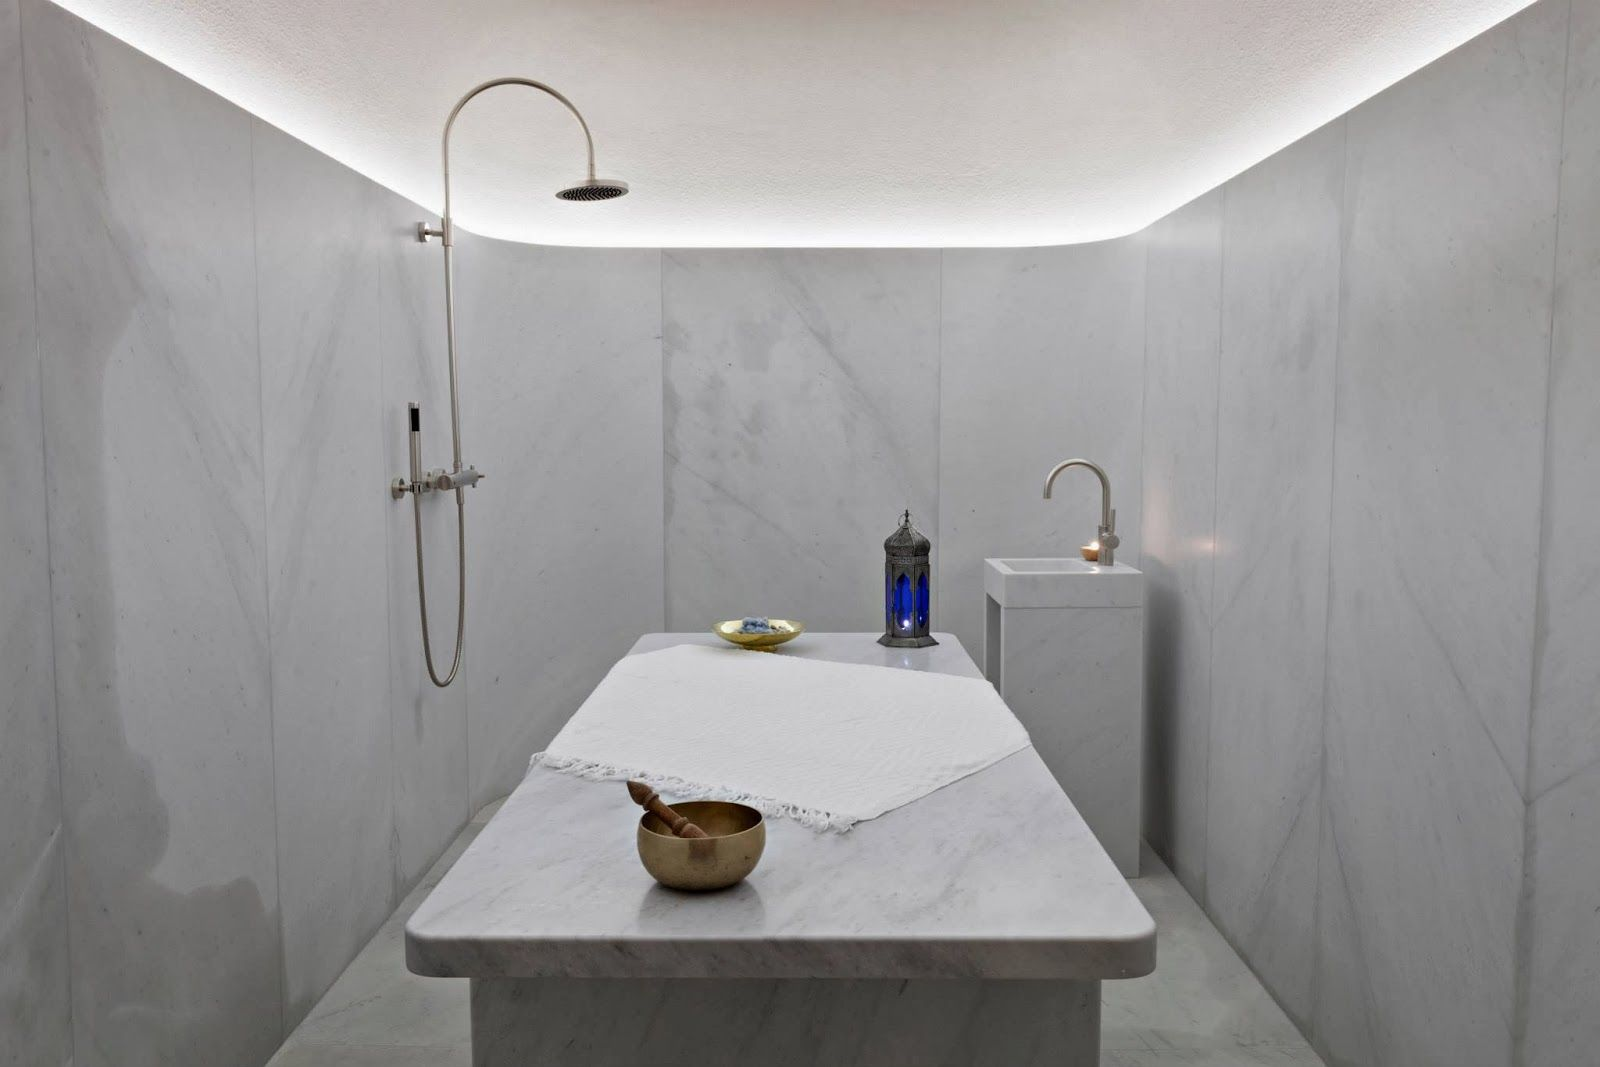 Carrara marble bathroom image the cafe royal hotel regent street - Simplicity Love Akasha Holistic Wellbeing Centre Cafe Royal London David Chipperfield Architects D David Chipperfield Pinterest Wellbeing Centre